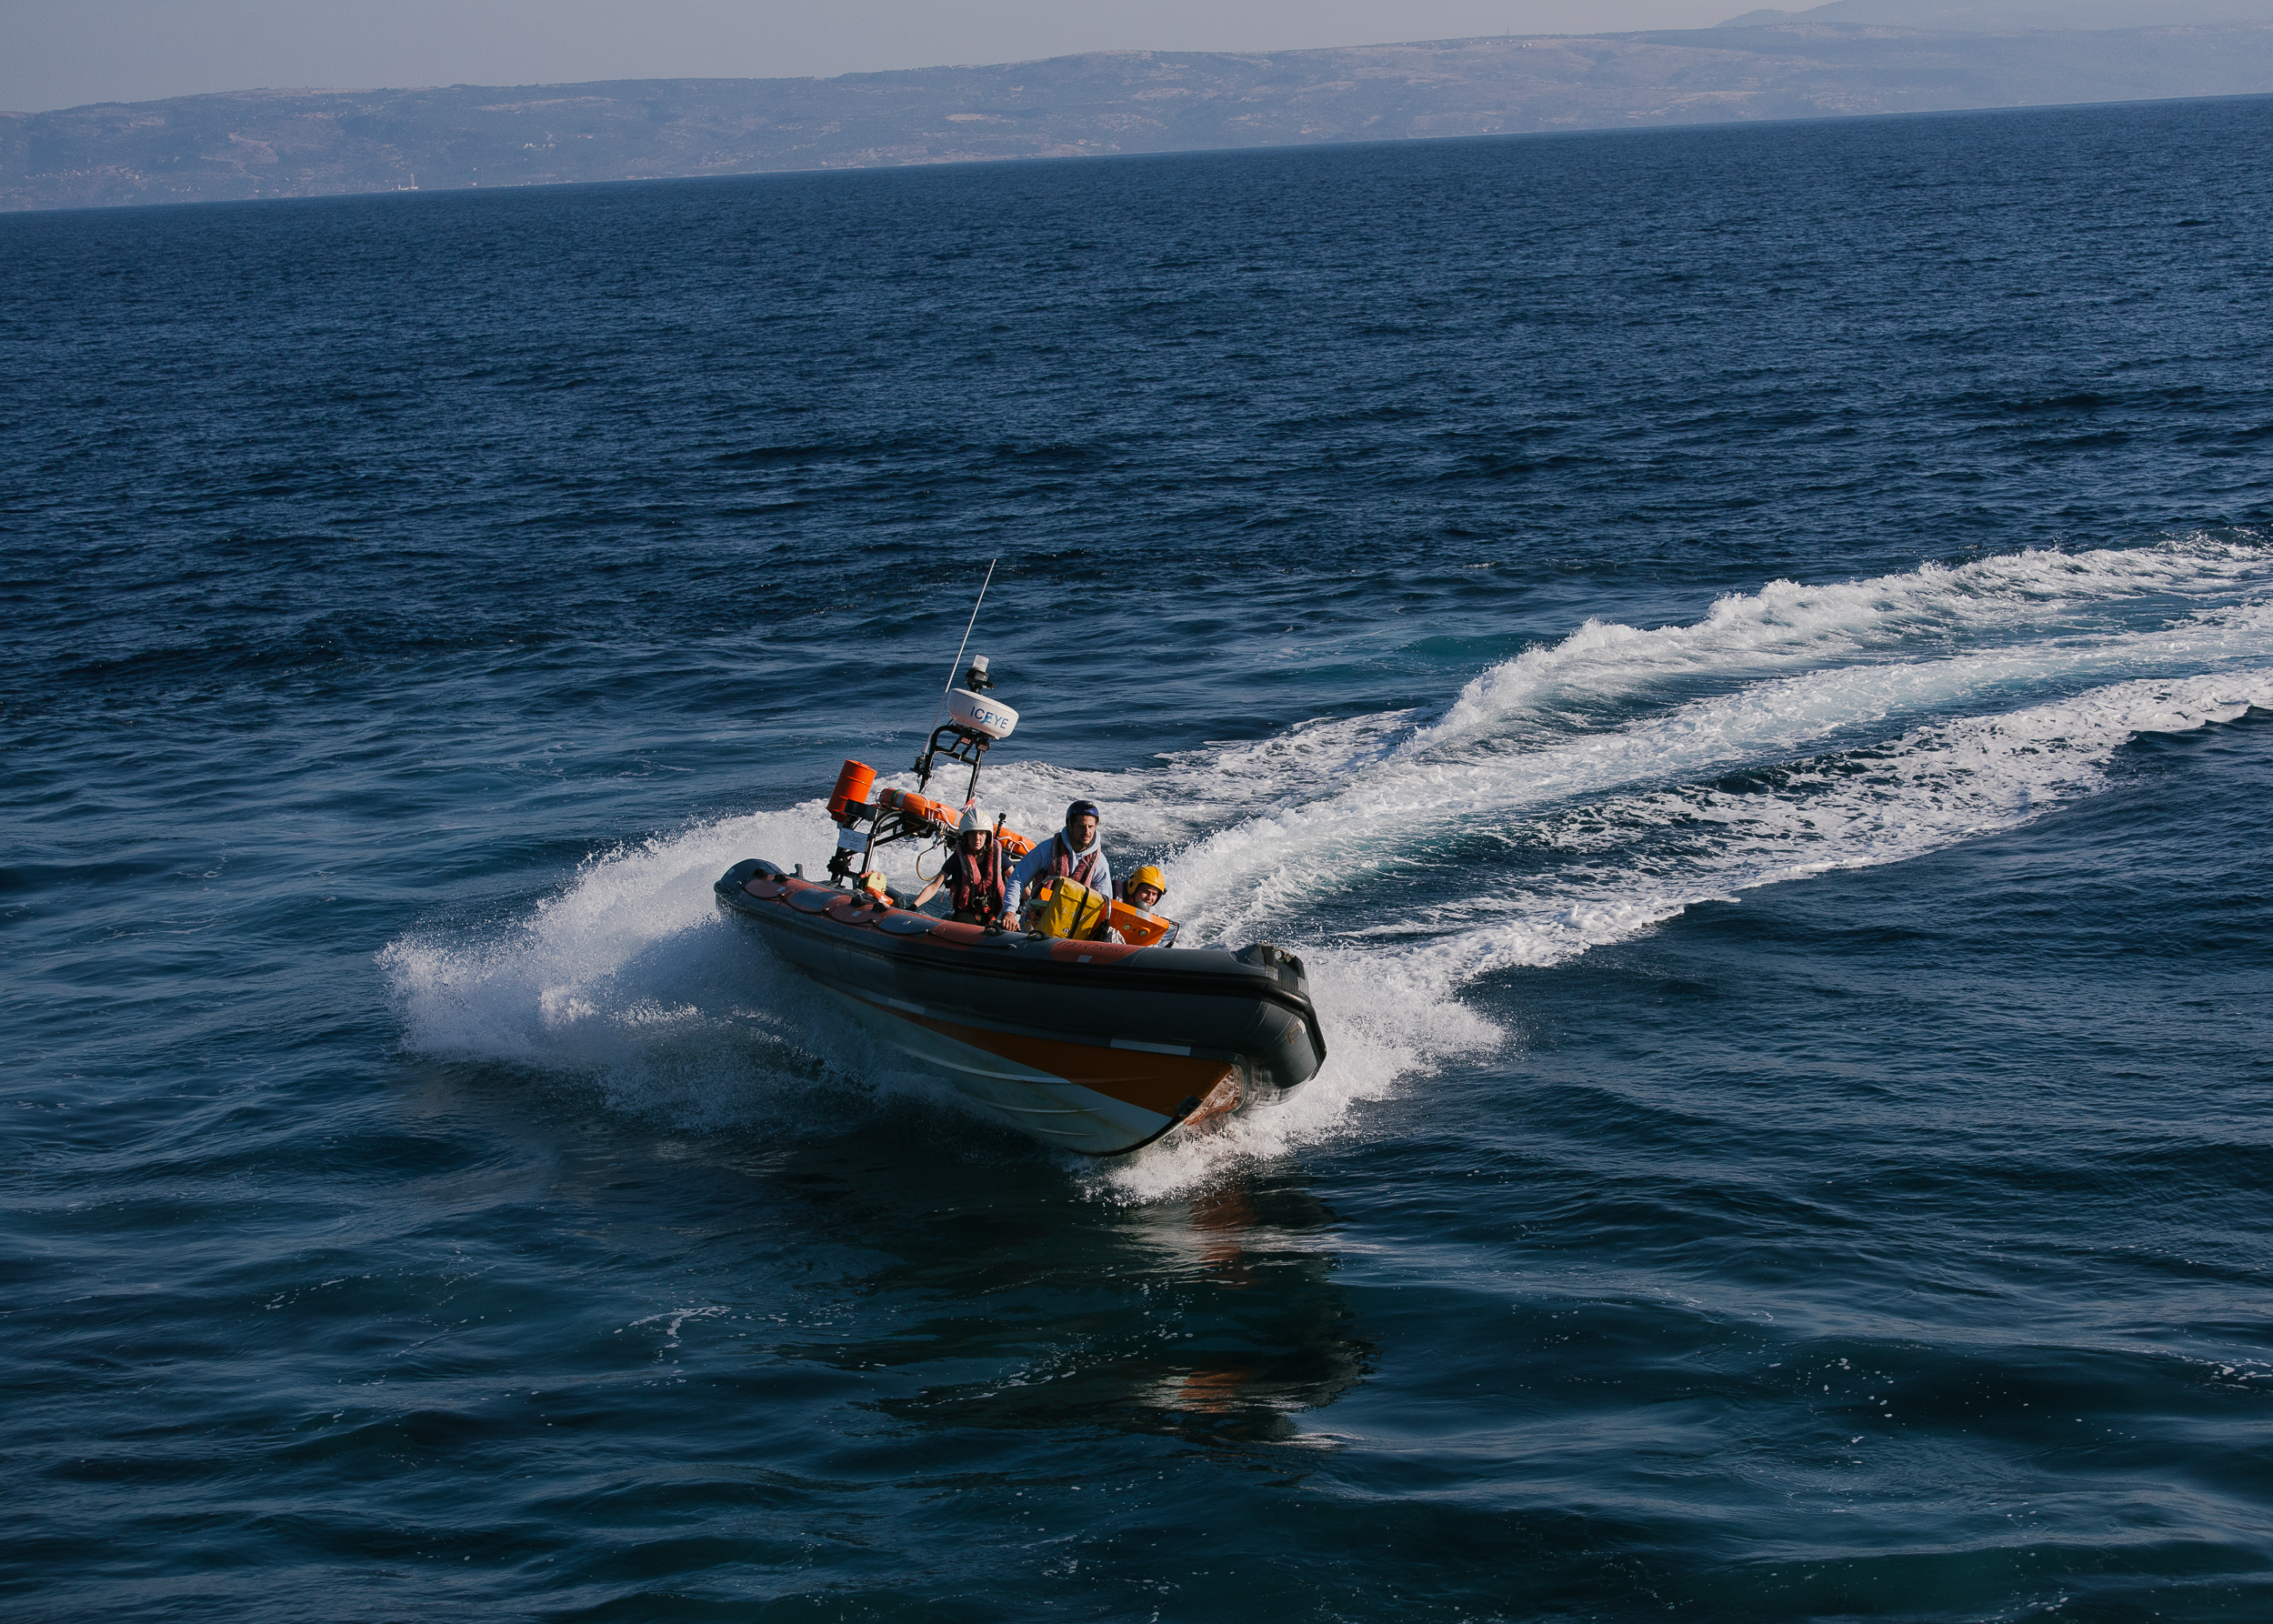 £ 1000,00 - covers the cost of vital maintenance to keep our rescue boat afloat